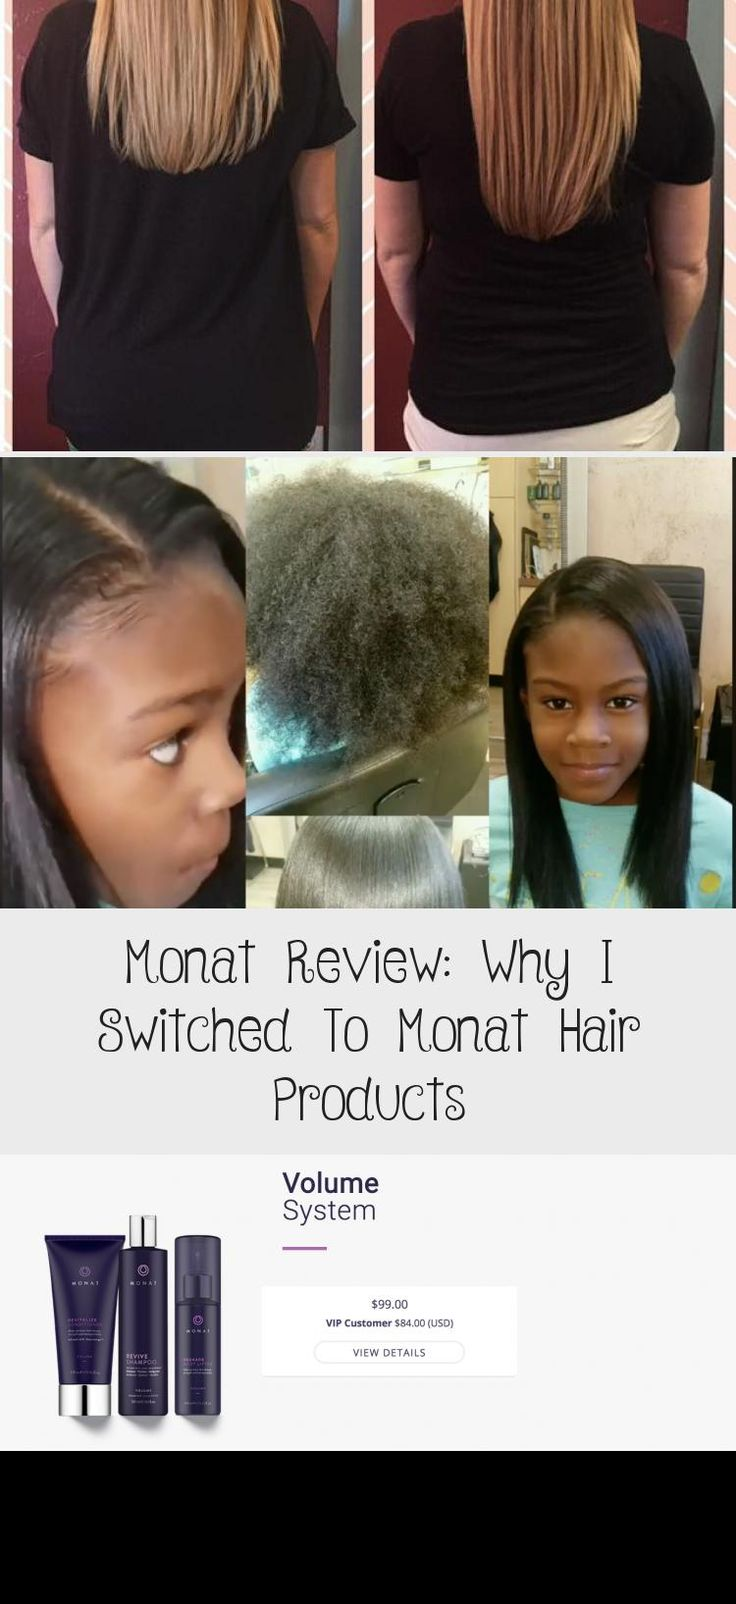 MONAT Review Why I Switched to MONAT Hair Products